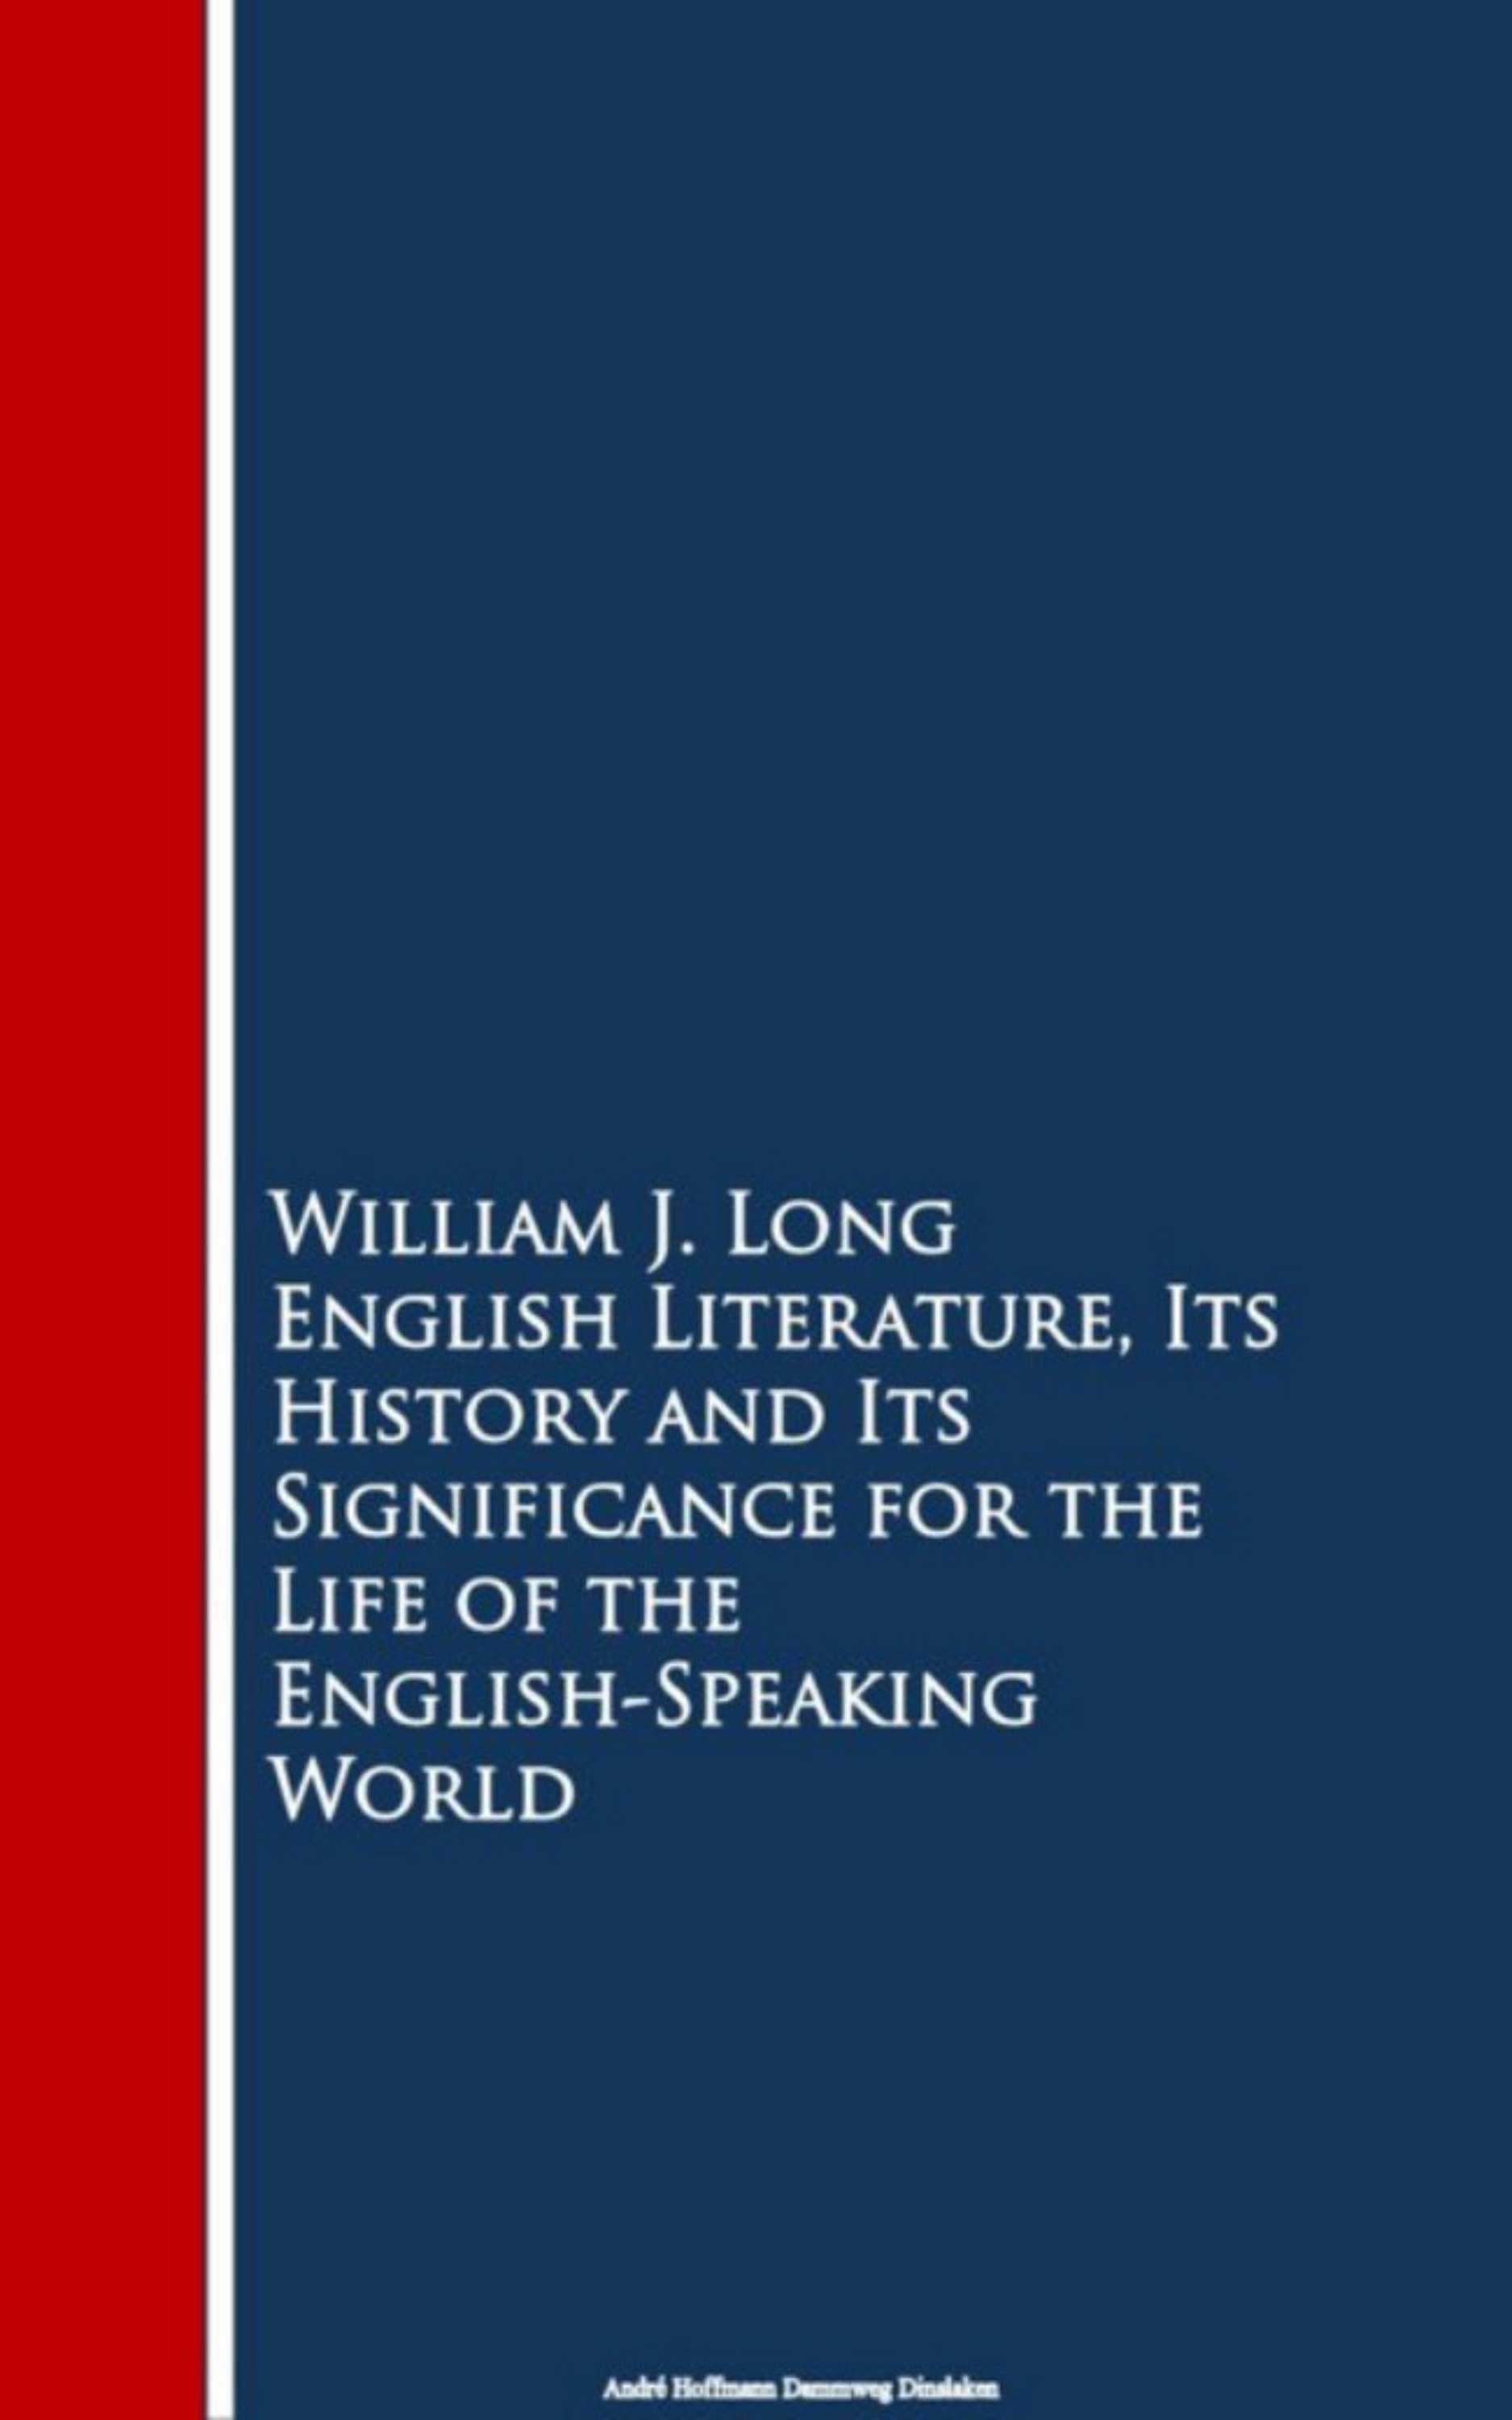 William J. Long English Literature, Its History and Its Signi the English-Speaking World english world 1 tb